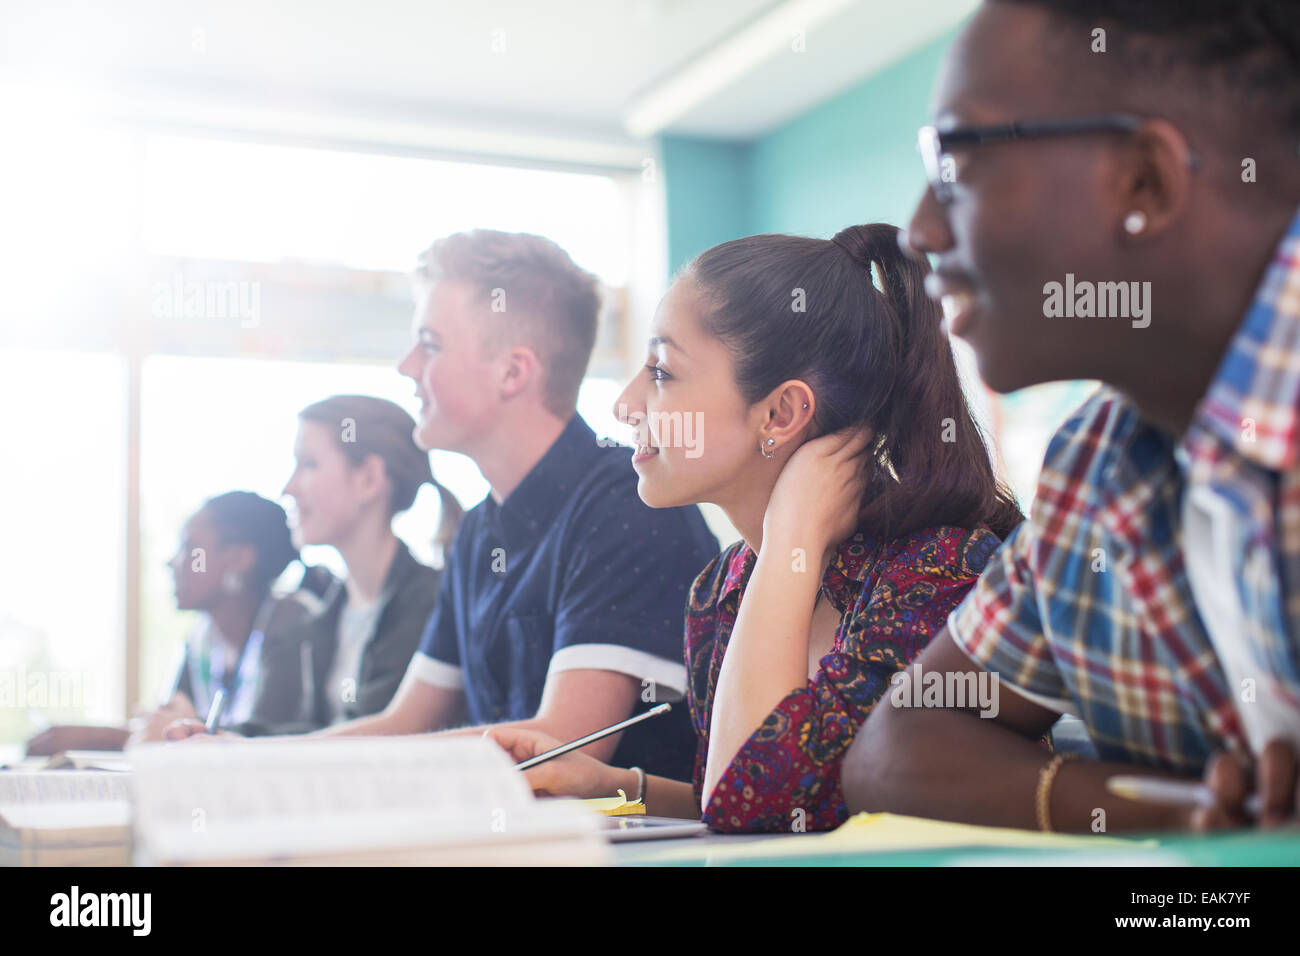 Students in classroom during lesson - Stock Image